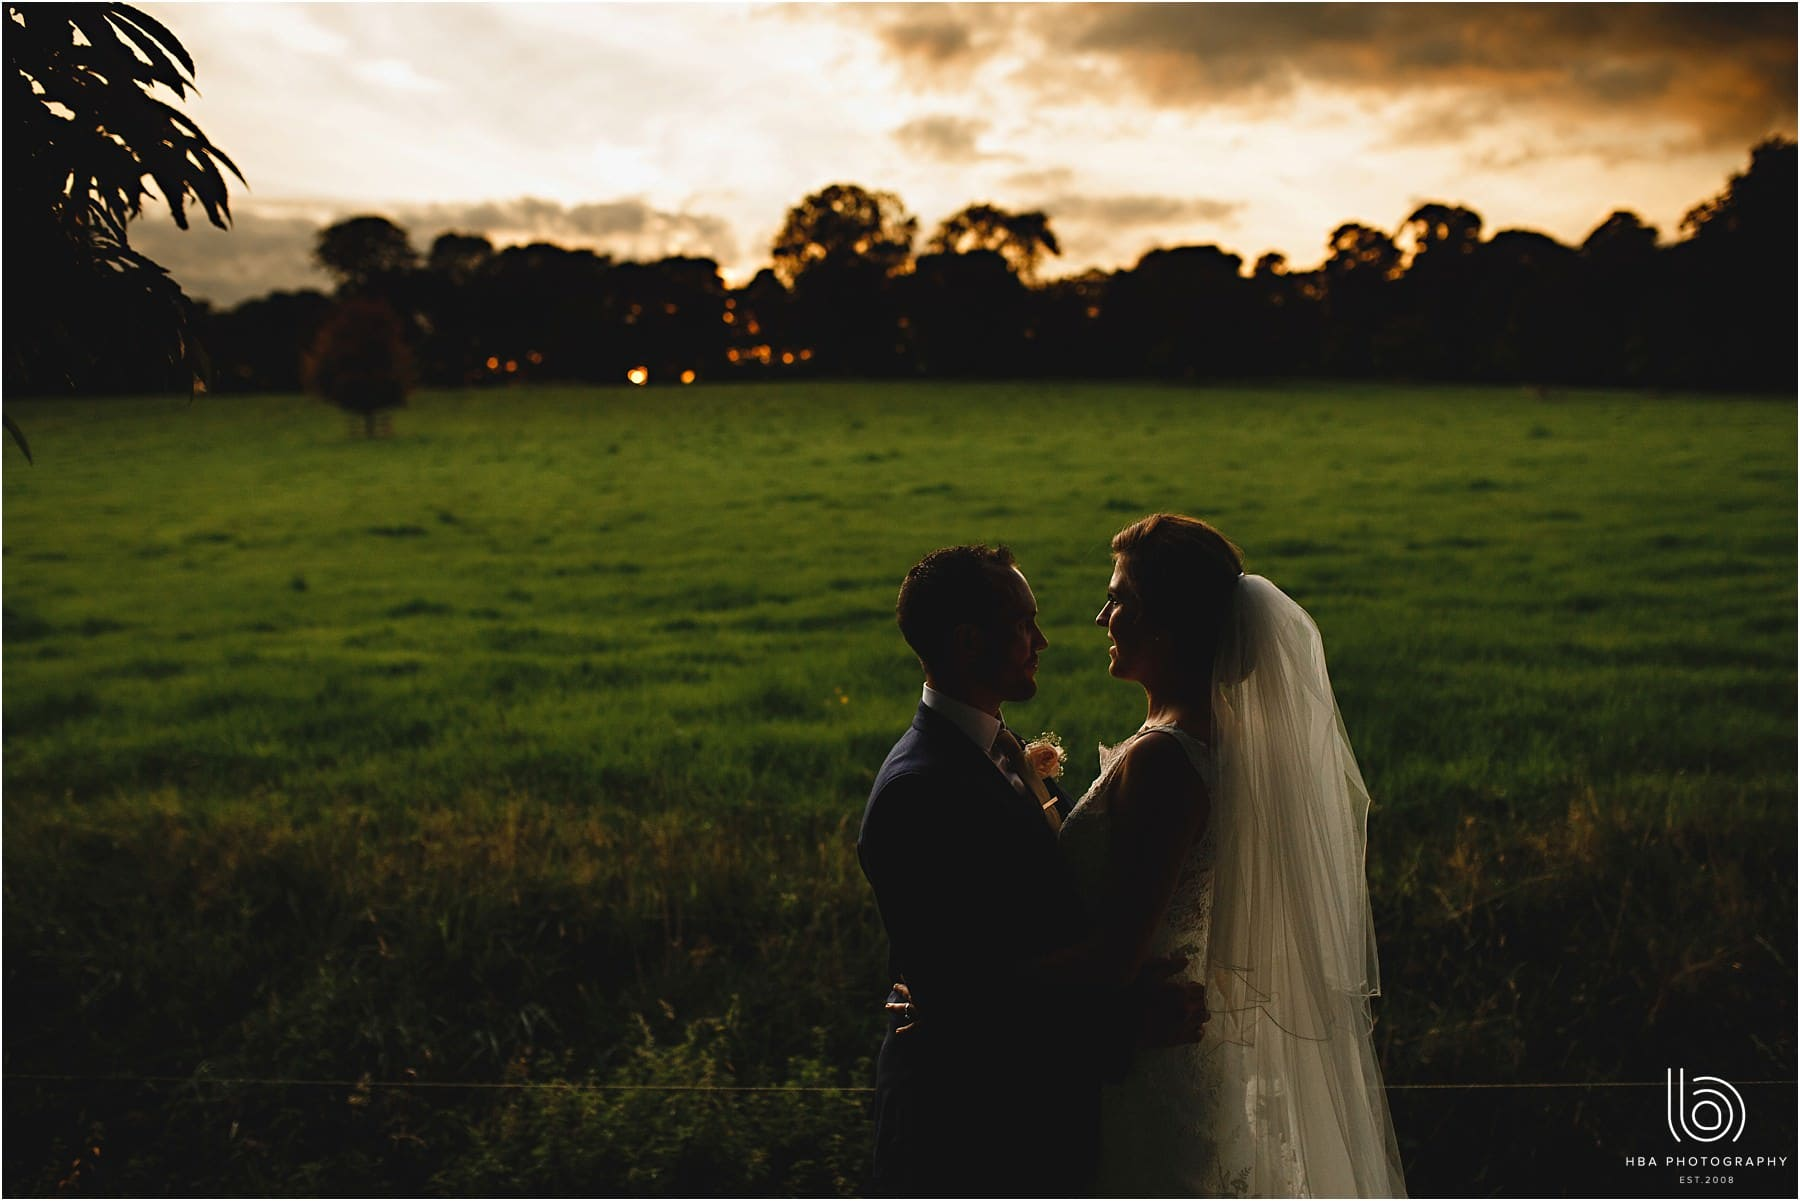 the bride & groom as the sun sets